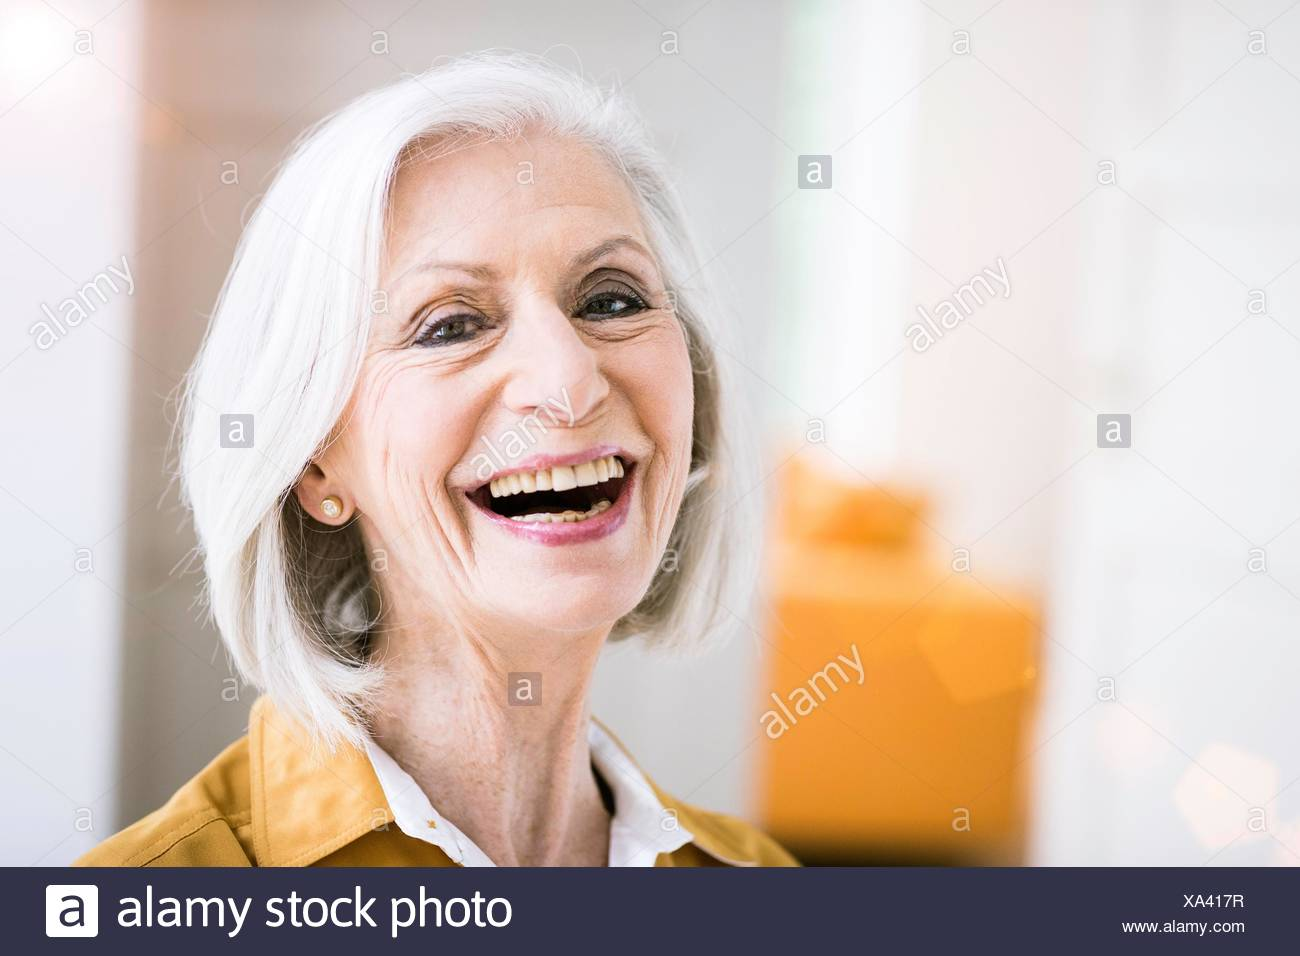 Portrait of senior woman looking at camera open mouthed smiling - Stock Image